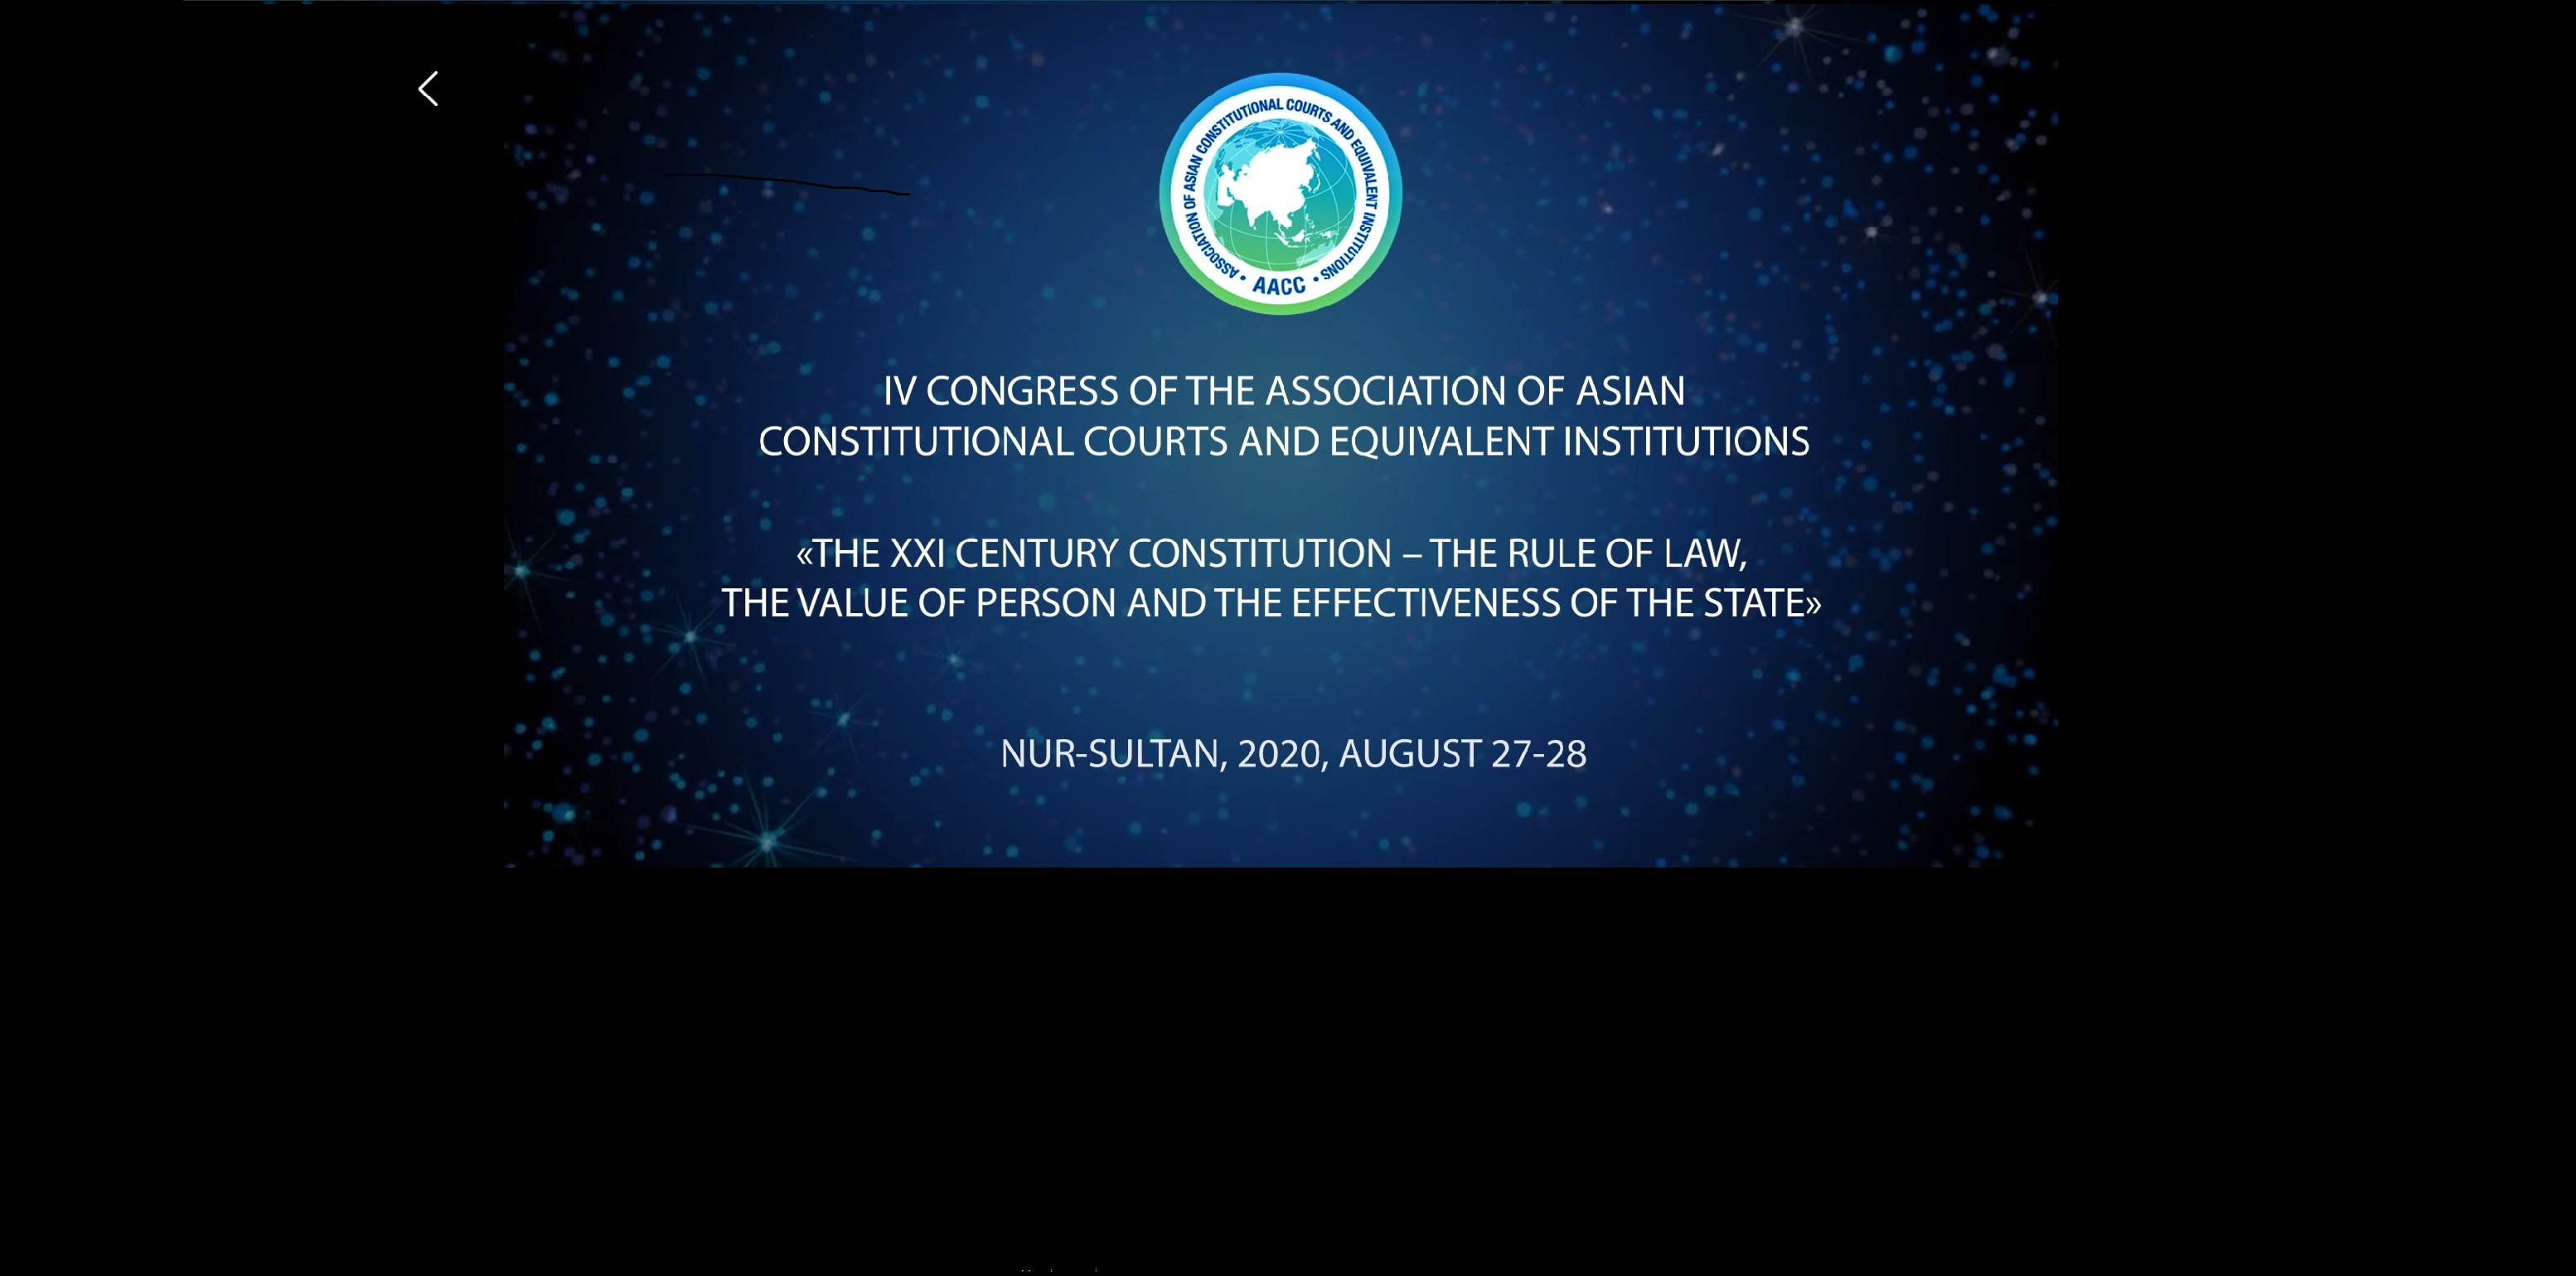 (Upcoming Event) IV Congress of The Association of Asian Constitutional Courts and Equivalent Institutions